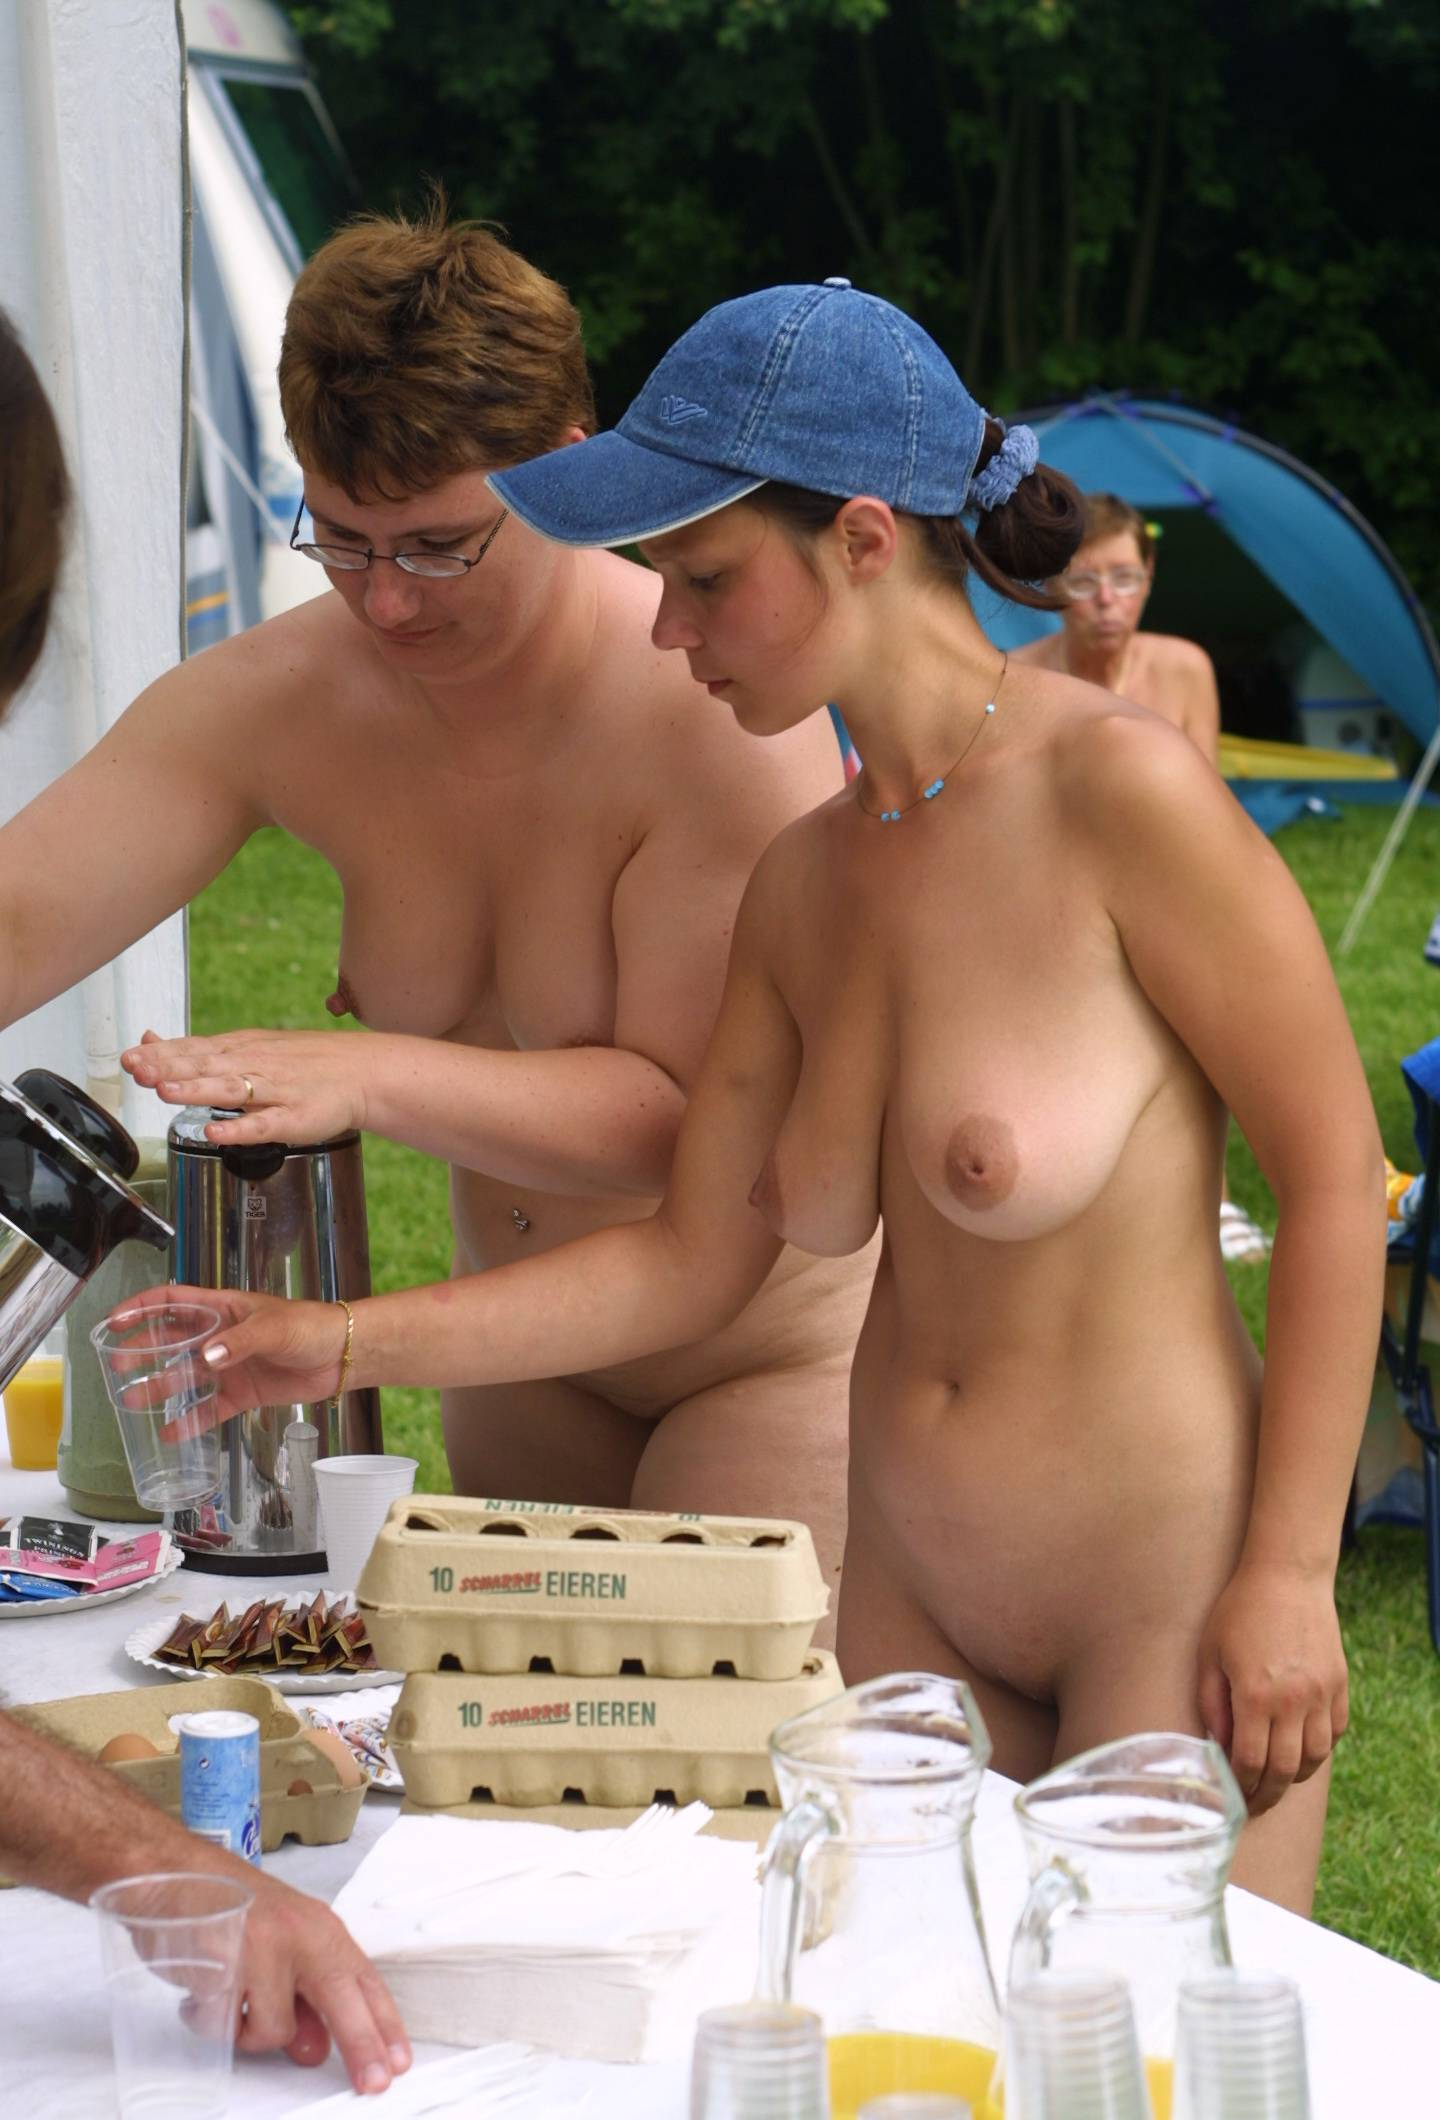 Nudist Pics Holland Picnic Relaxation - 1